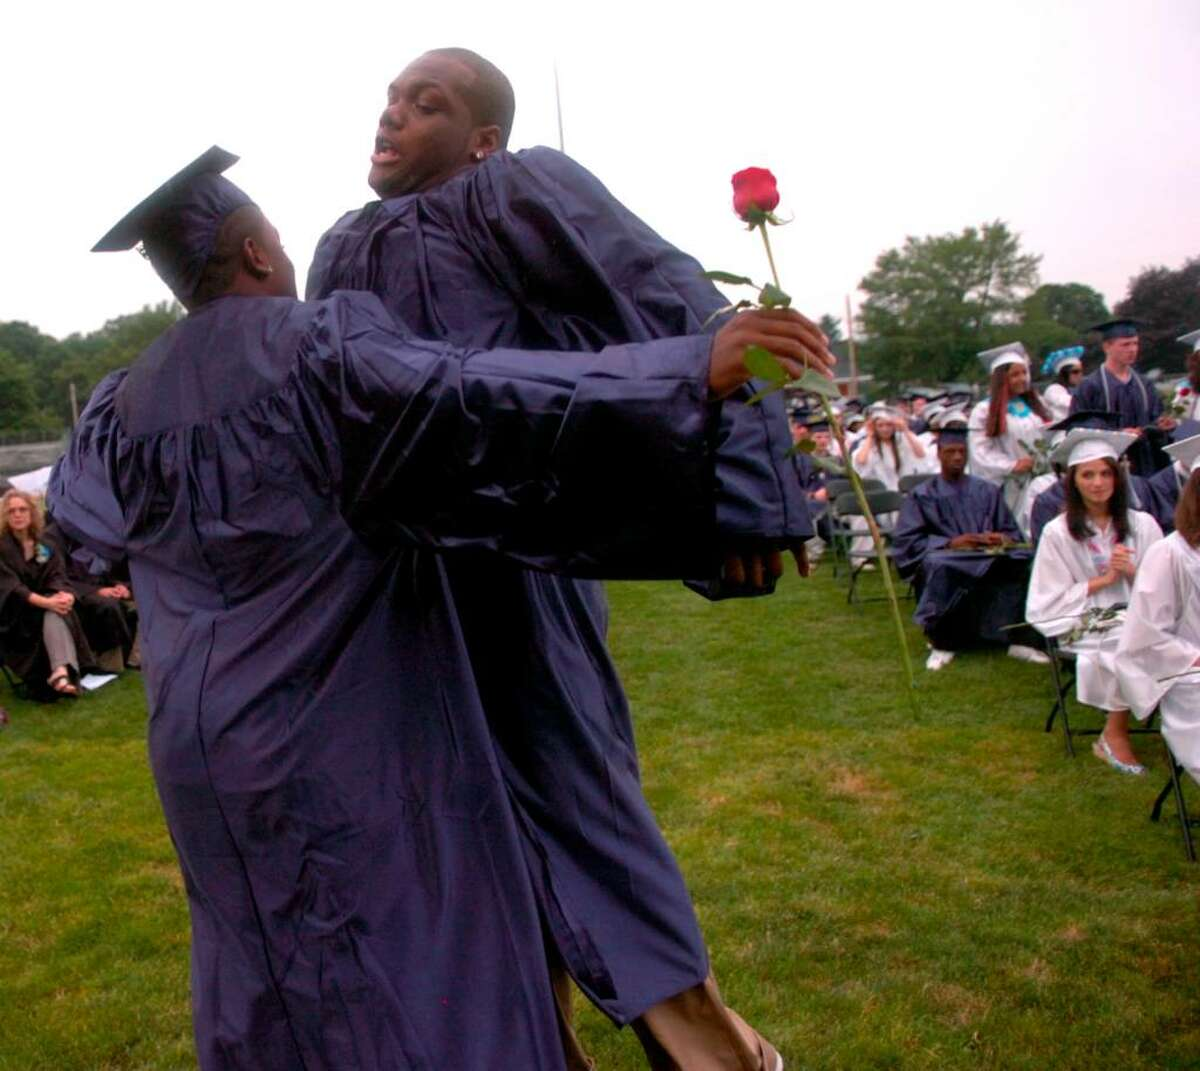 Raymond Beall, right, and Bobby Kinnebrew IV, left, chest bump in celebration of being awarded their diplomas during the Ansonia High School graduation ceremony Tuesday, June 22, 2010 at Jarvis Field.